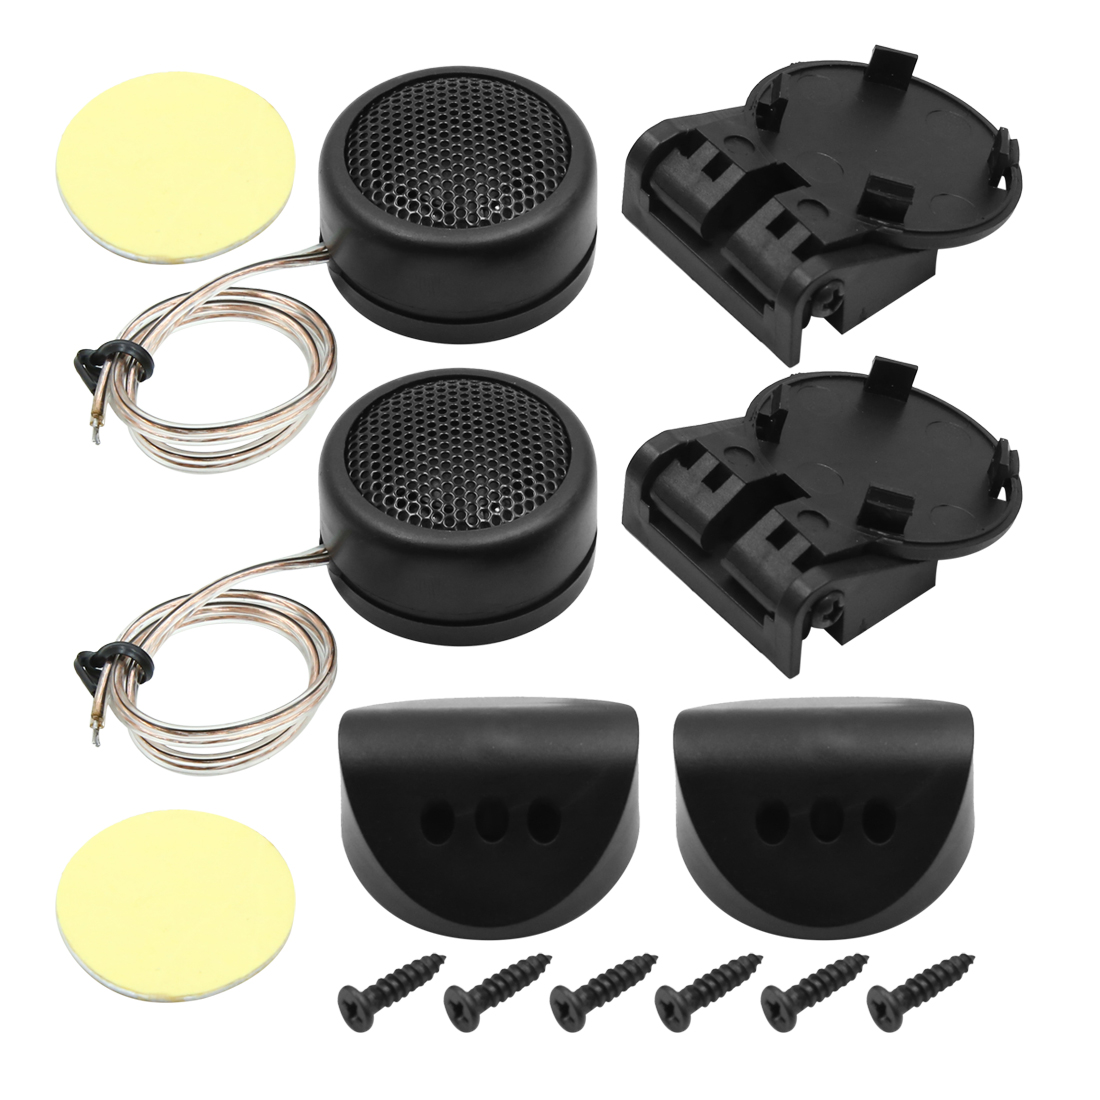 Car Vehicle Surface Mount Dome Loud Speakers Tweeters Black 300W 100dB Pair